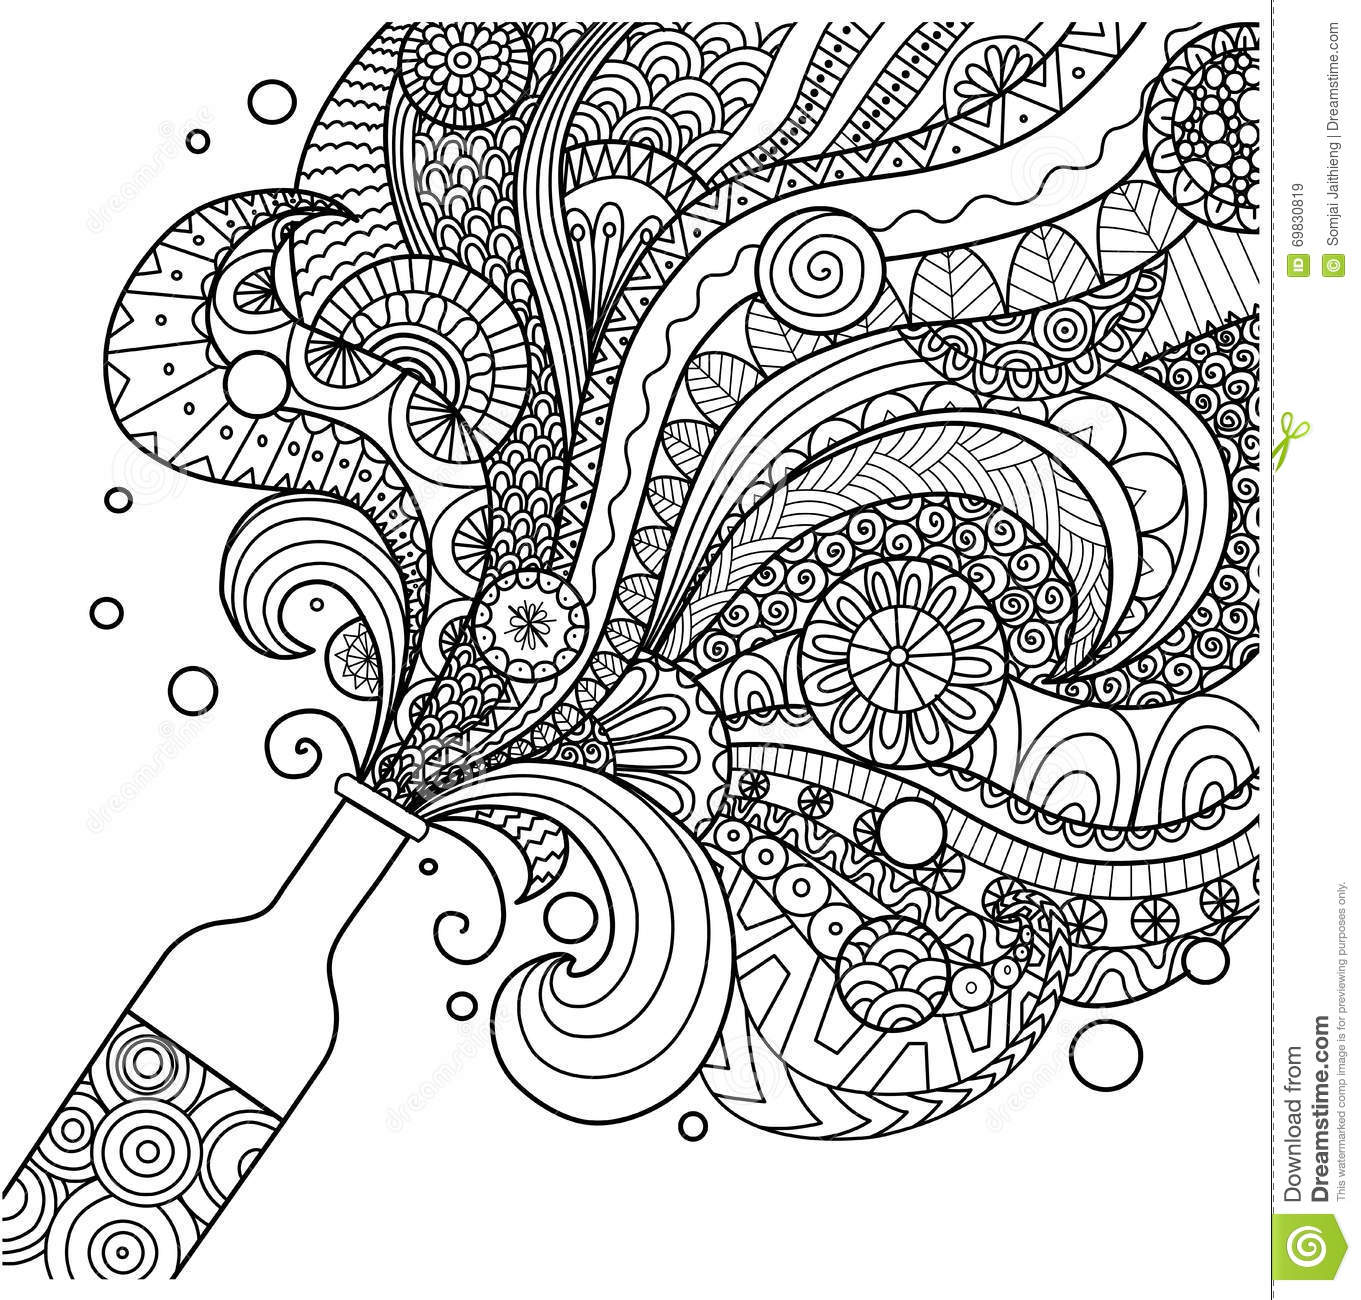 Colour Line Art Design : Champagne bottle line art design for coloring book